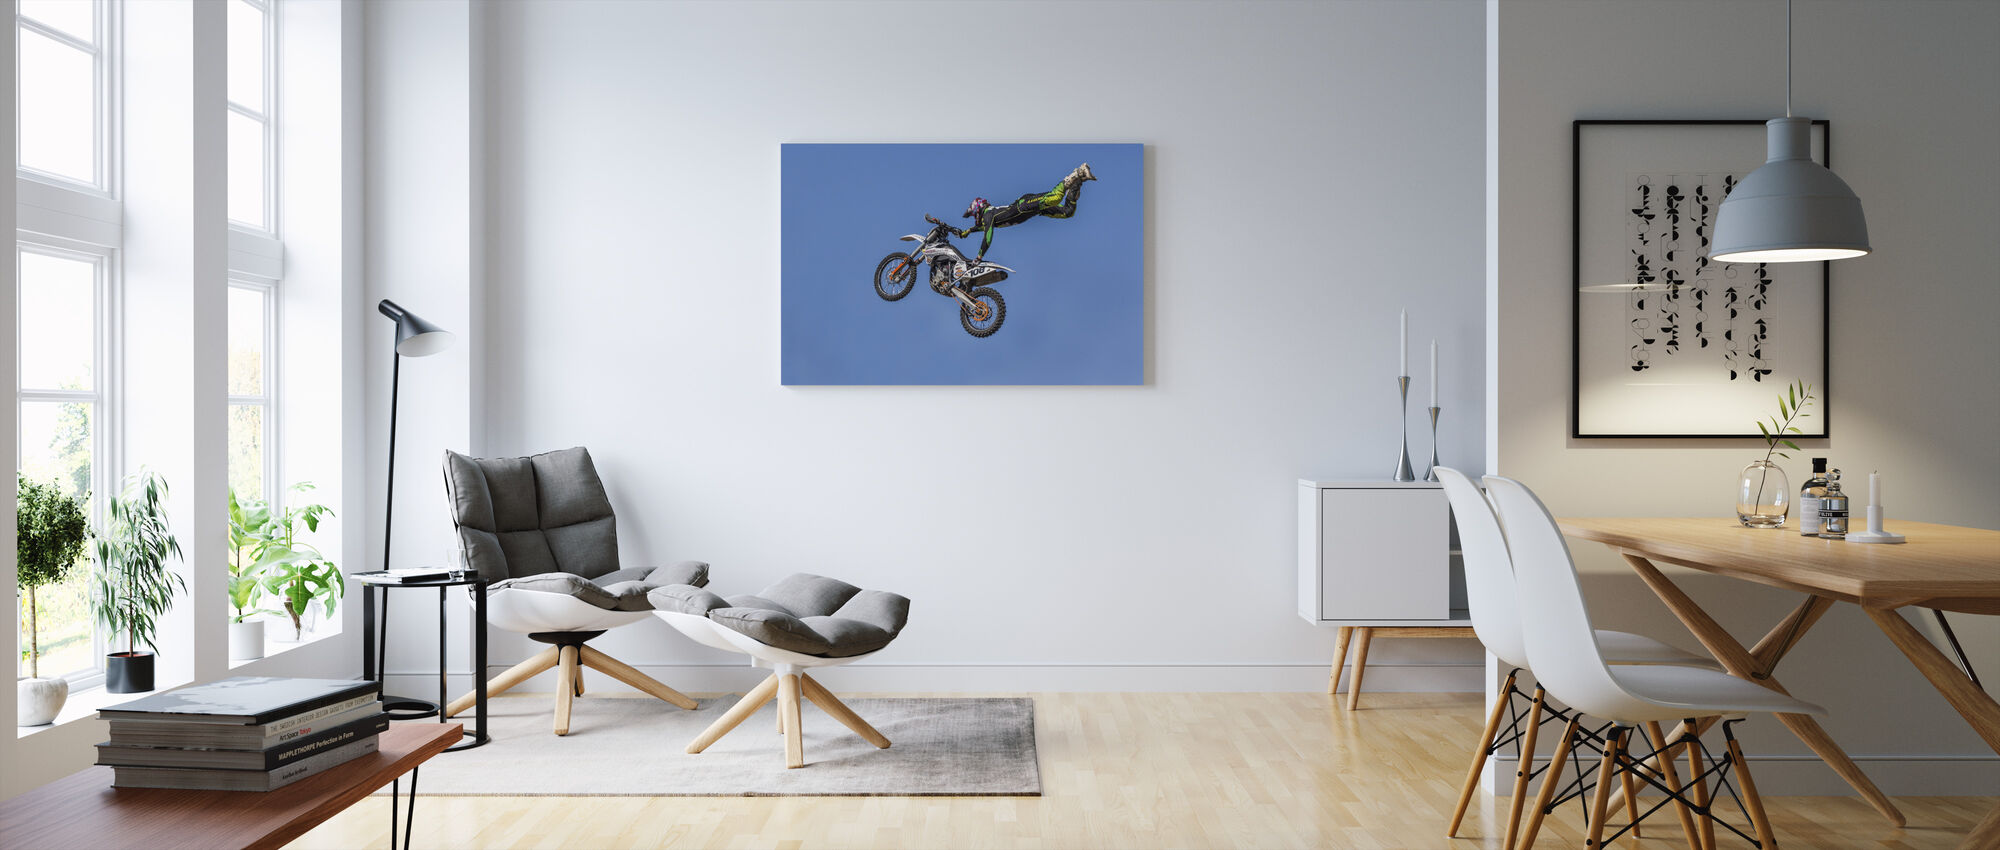 Extreme Motorcycle Sports - Canvas print - Living Room